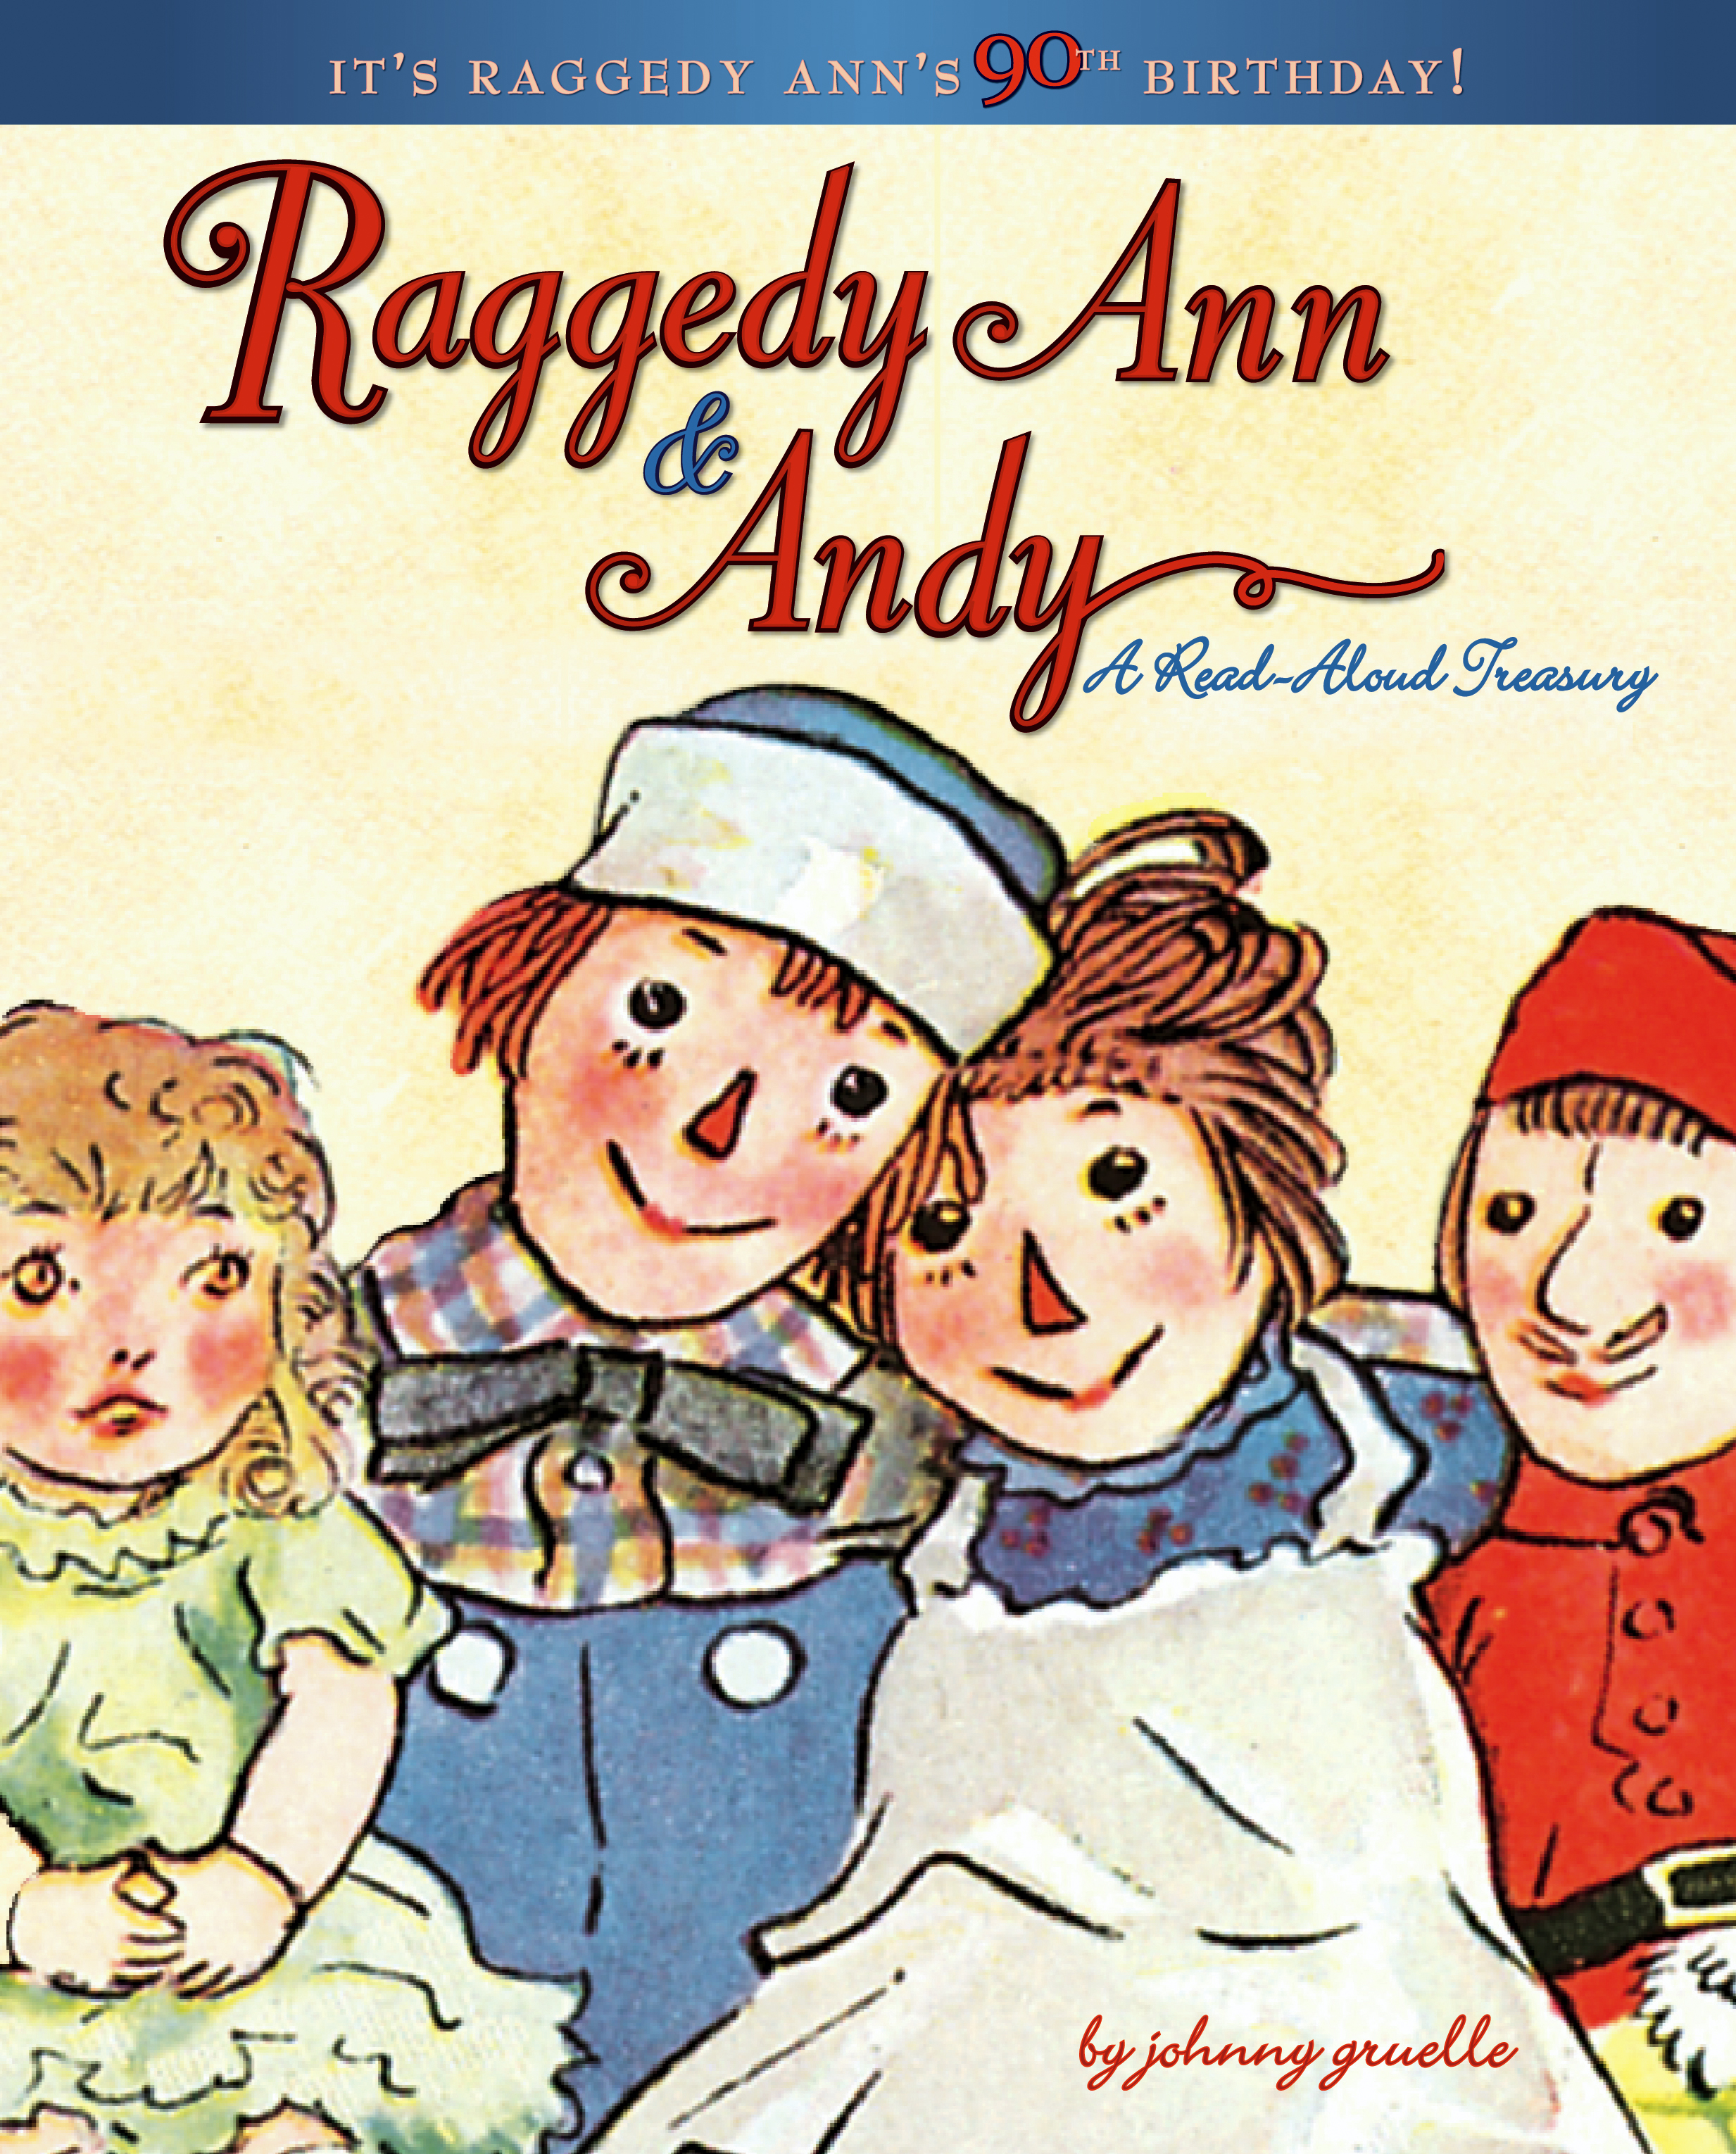 Raggedy Ann & Andy   Book by Johnny Gruelle   Official ...